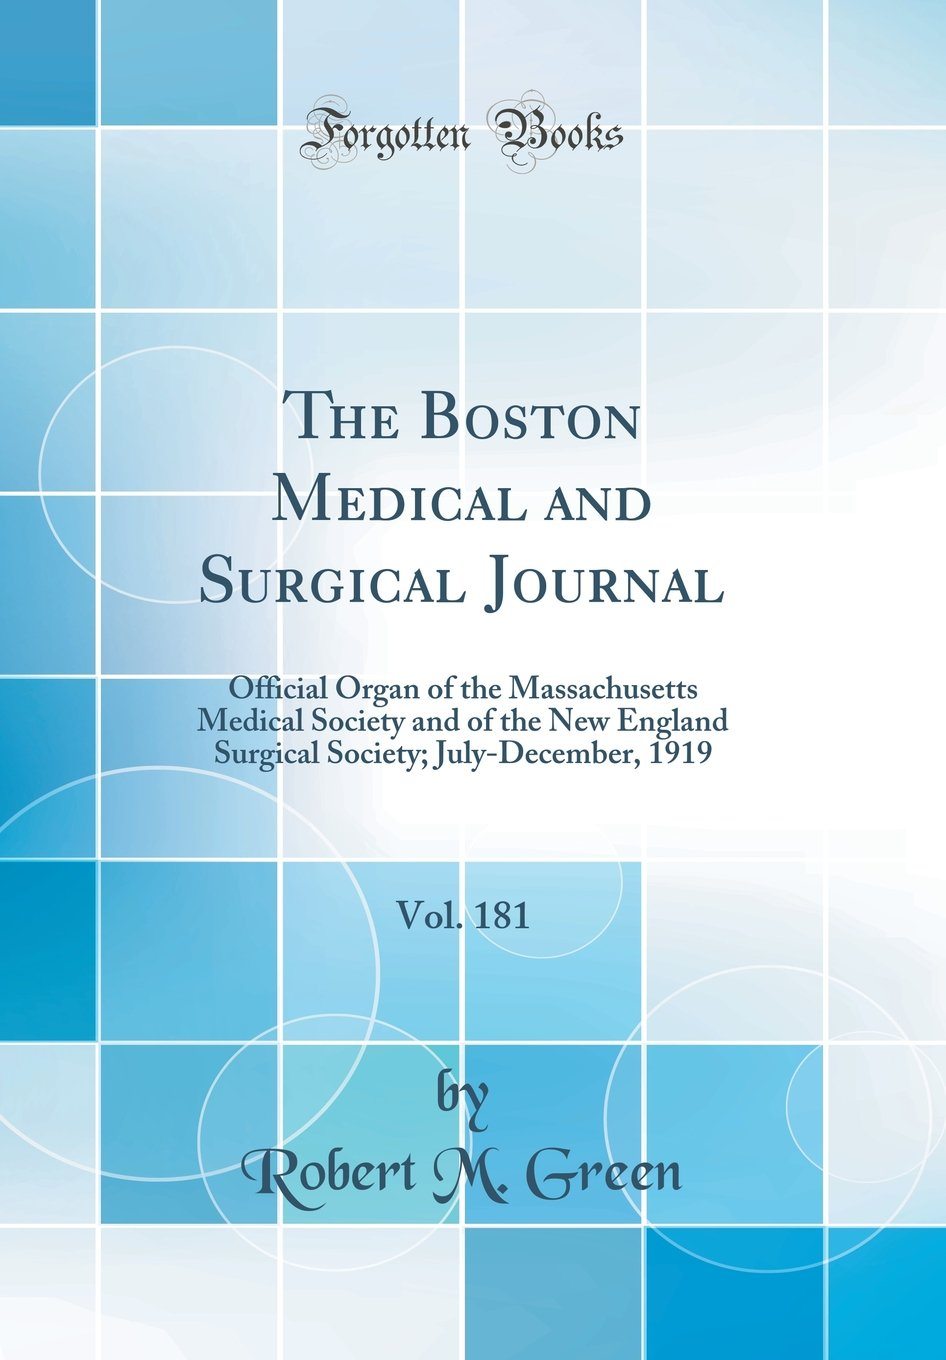 The Boston Medical and Surgical Journal, Vol. 181: Official Organ of the Massachusetts Medical Society and of the New England Surgical Society; July-December, 1919 (Classic Reprint) pdf epub